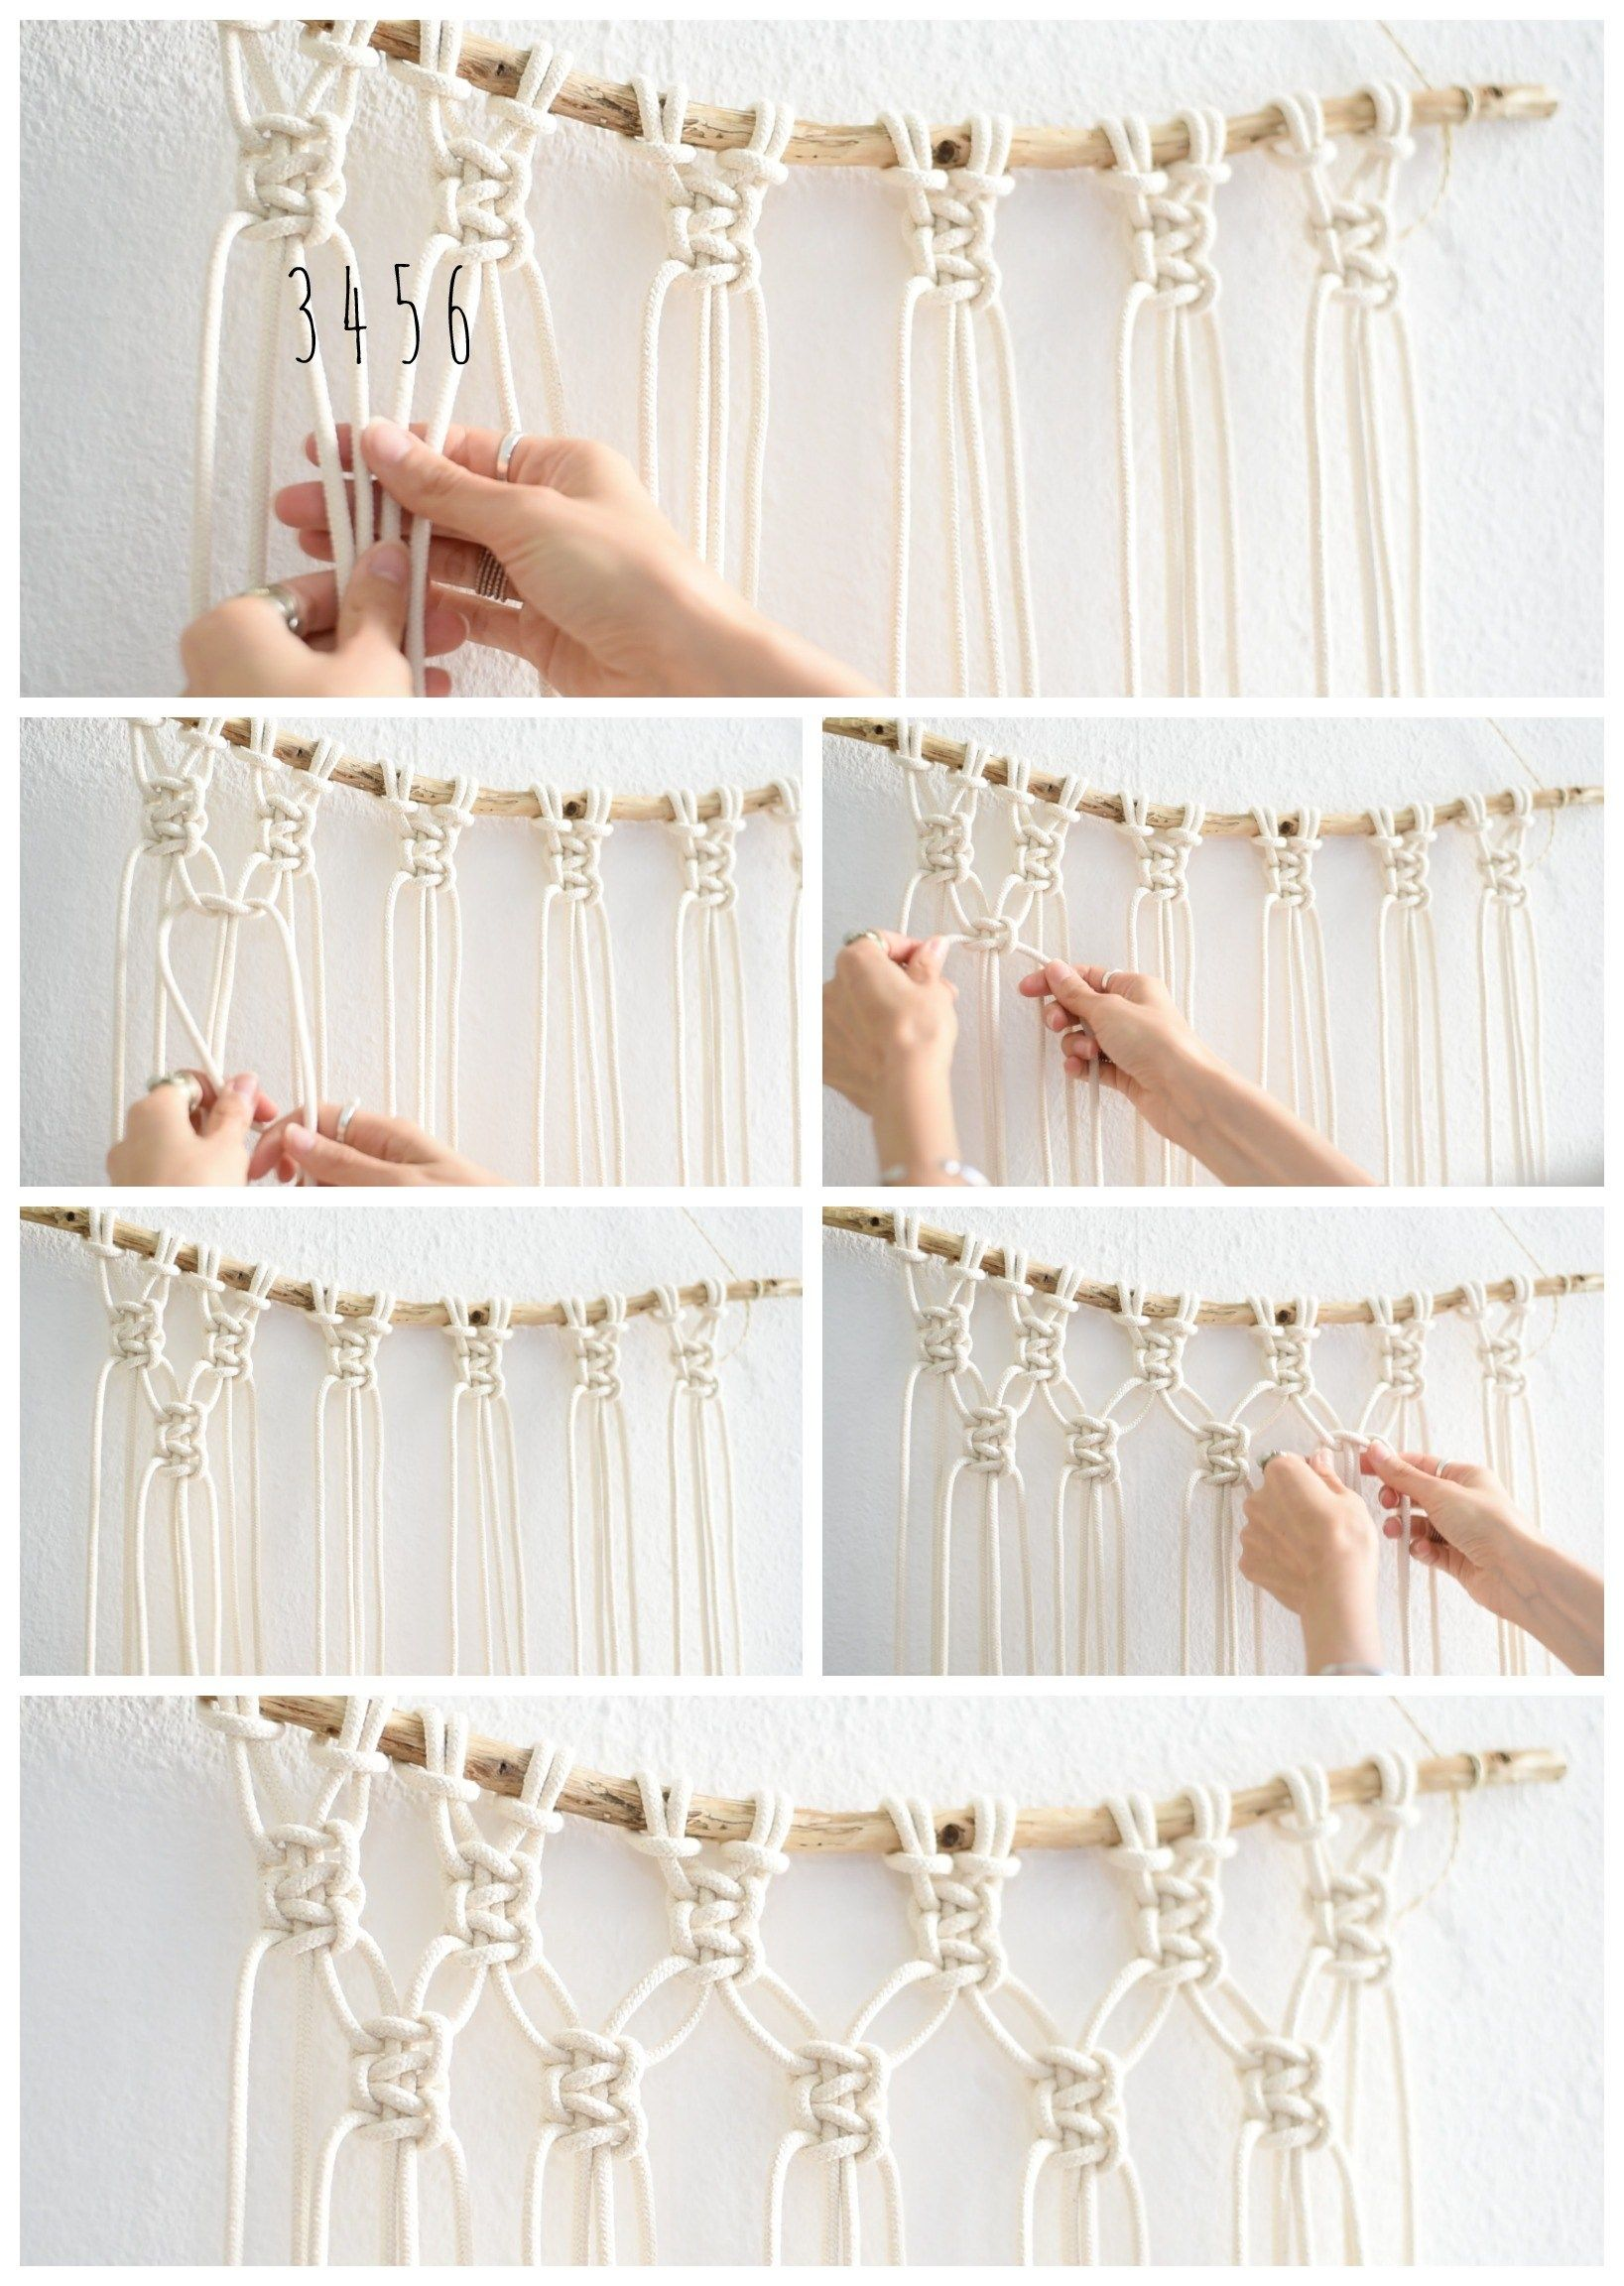 Interior Super Easy Diy Macrame Wall Hanging Tutorial Heylilahey Macrame Wall Hanging Tutorial Macrame Plant Hanger Tutorial Macrame Wall Hanging Diy